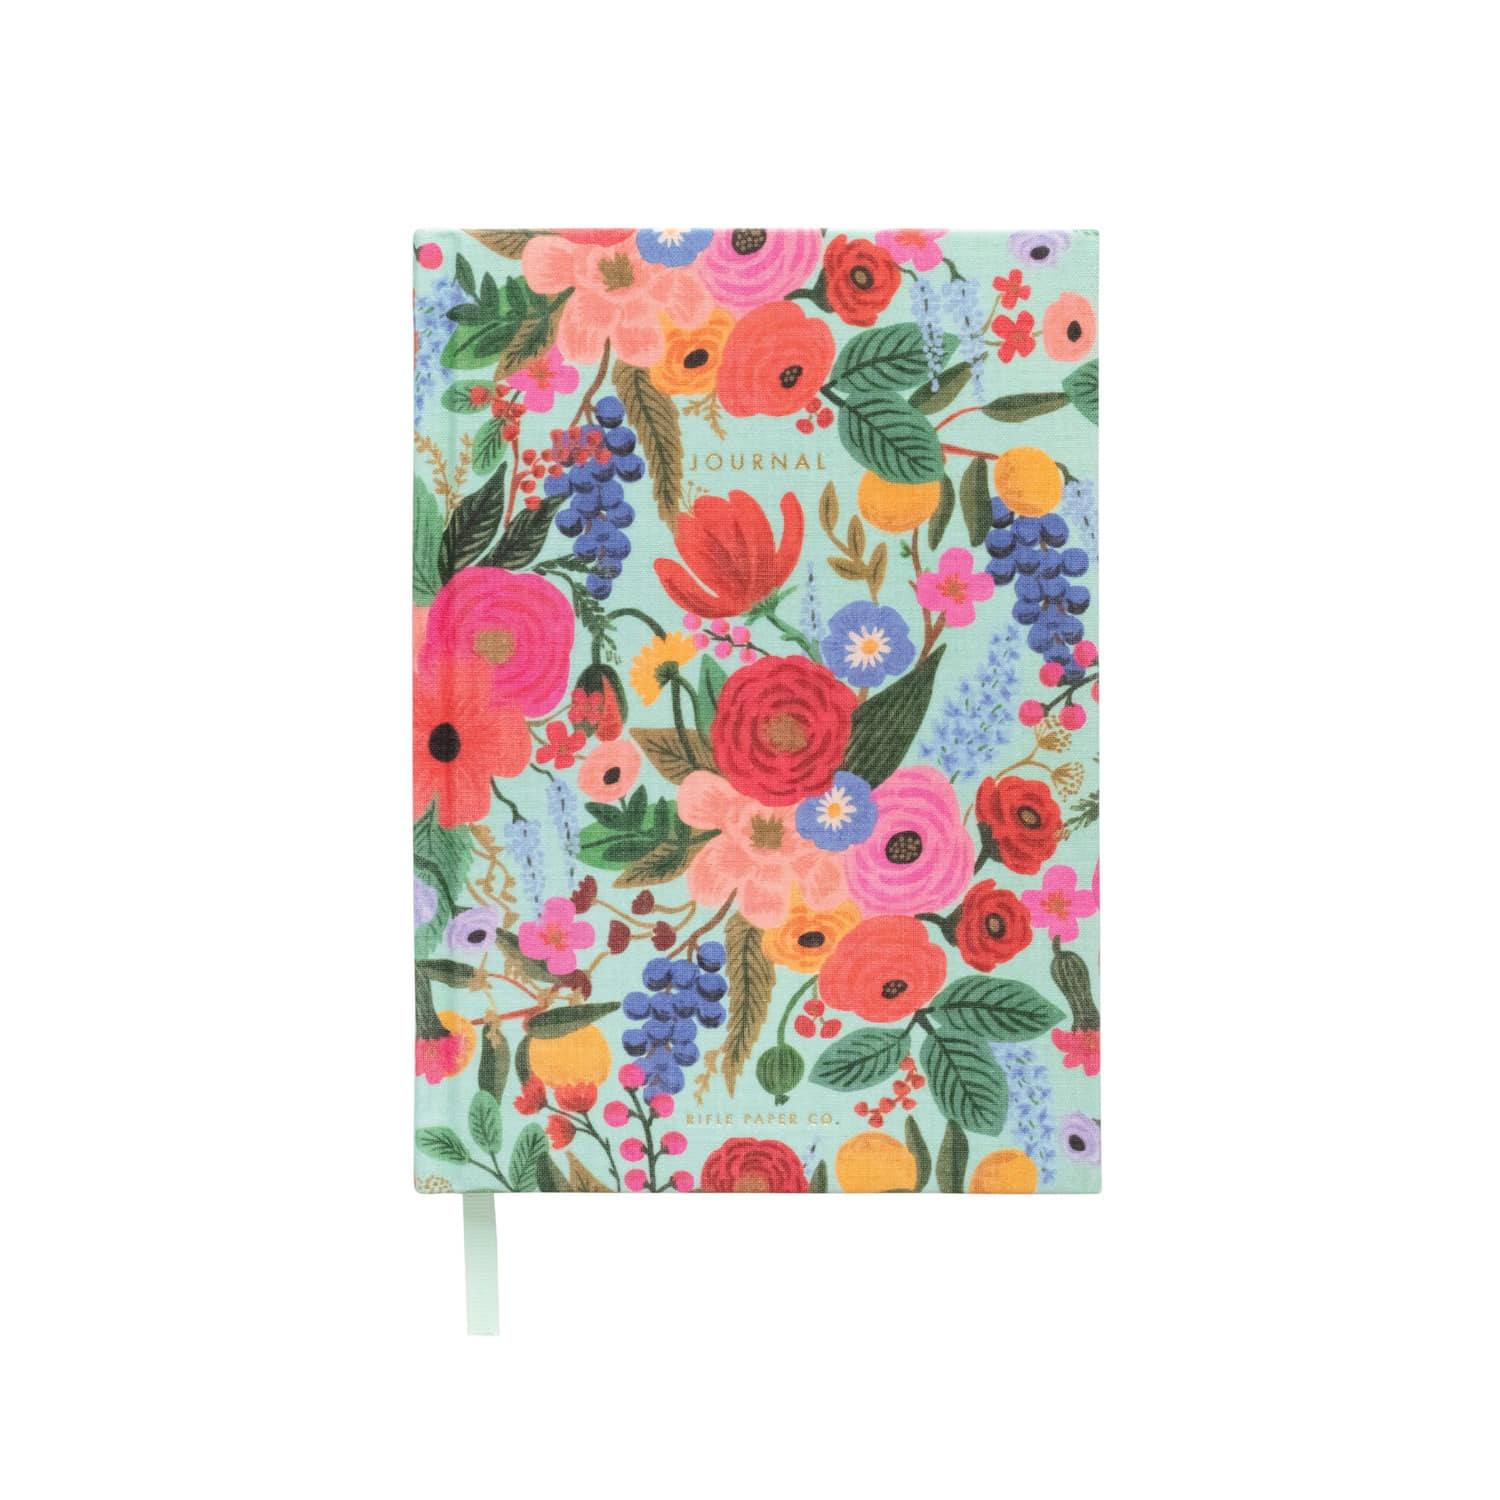 [Rifle Paper Co.] Garden Party Fabric Journal